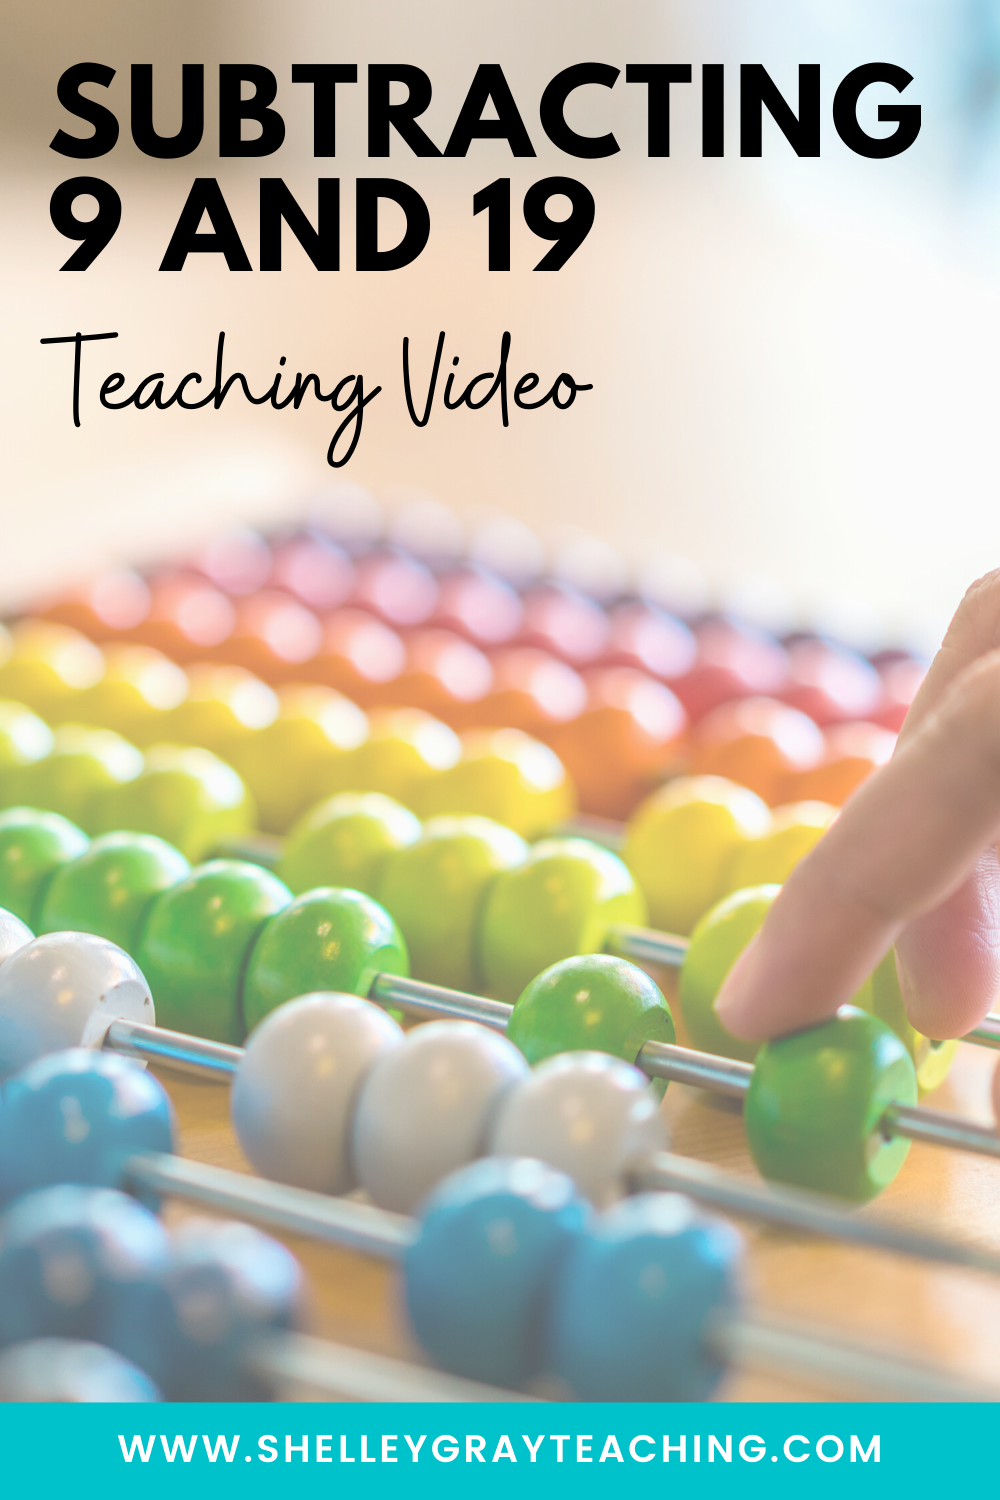 Subtracting 9 and 19: Teaching Video